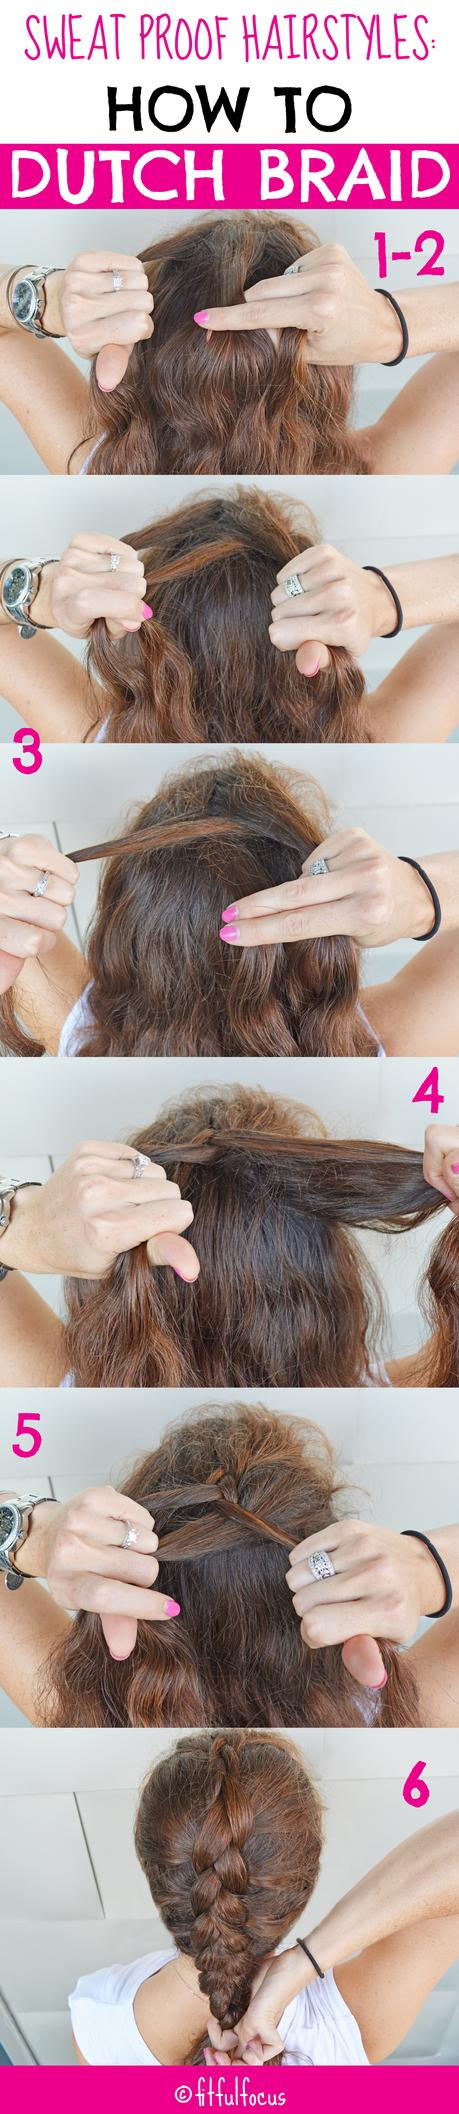 Sweat Proof Hairstyles: How To Dutch Braid